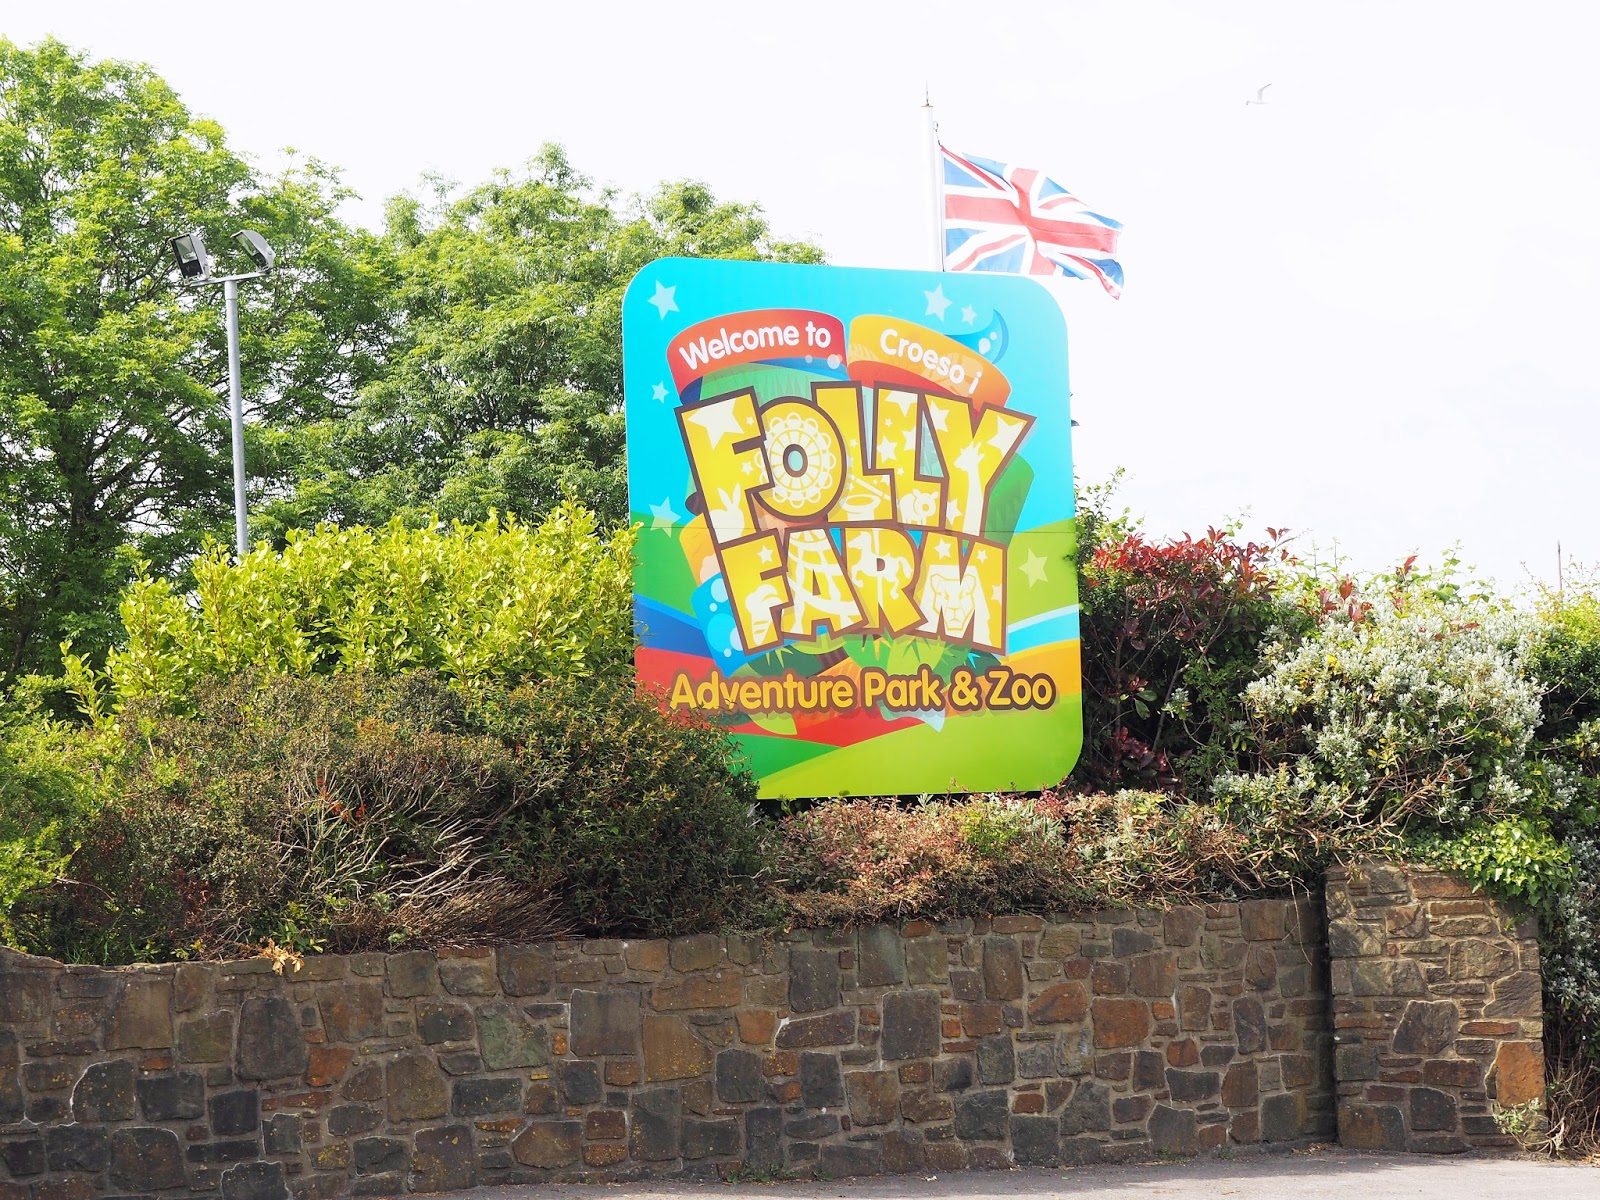 Folly Farm Adventure Park and Zoo Wales